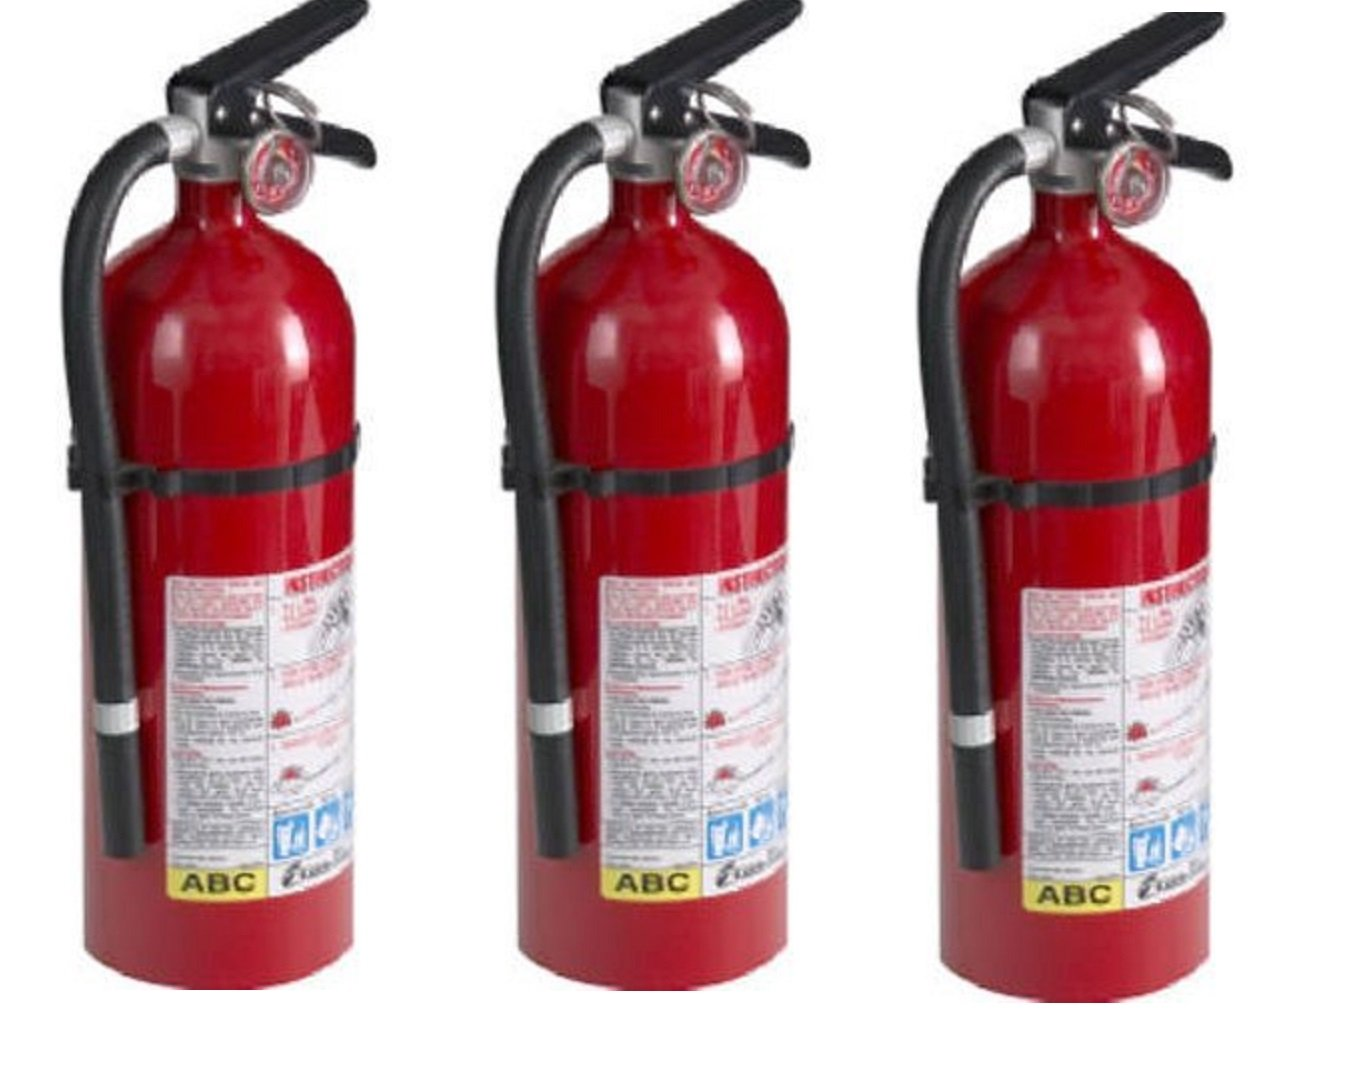 Kidde 21005779 Fire Extinguisher, ABC, 160CI, 4 lbs udBFUU, 3Pack (Pro 210)